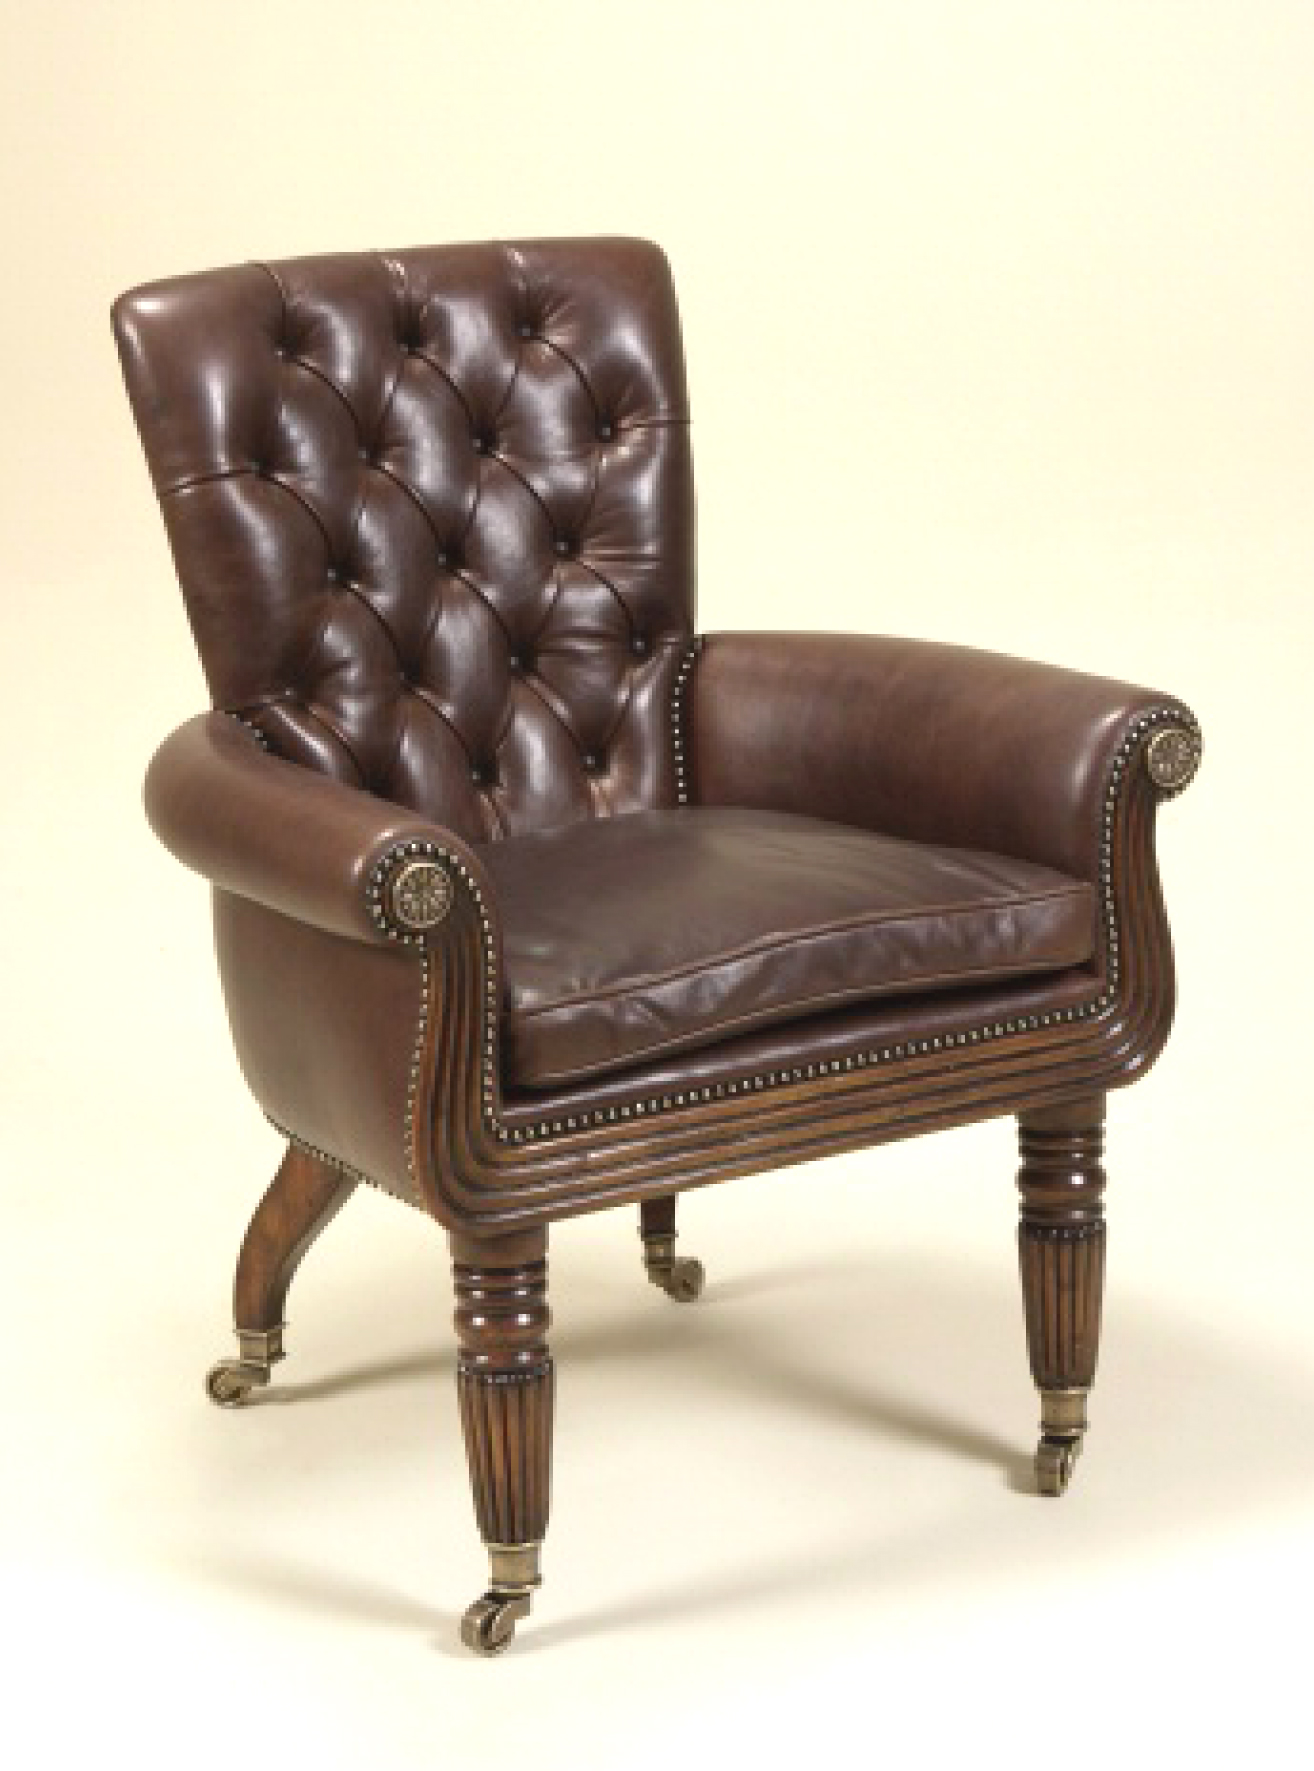 Attractive maitland smith for home furniture with maitland smith furniture